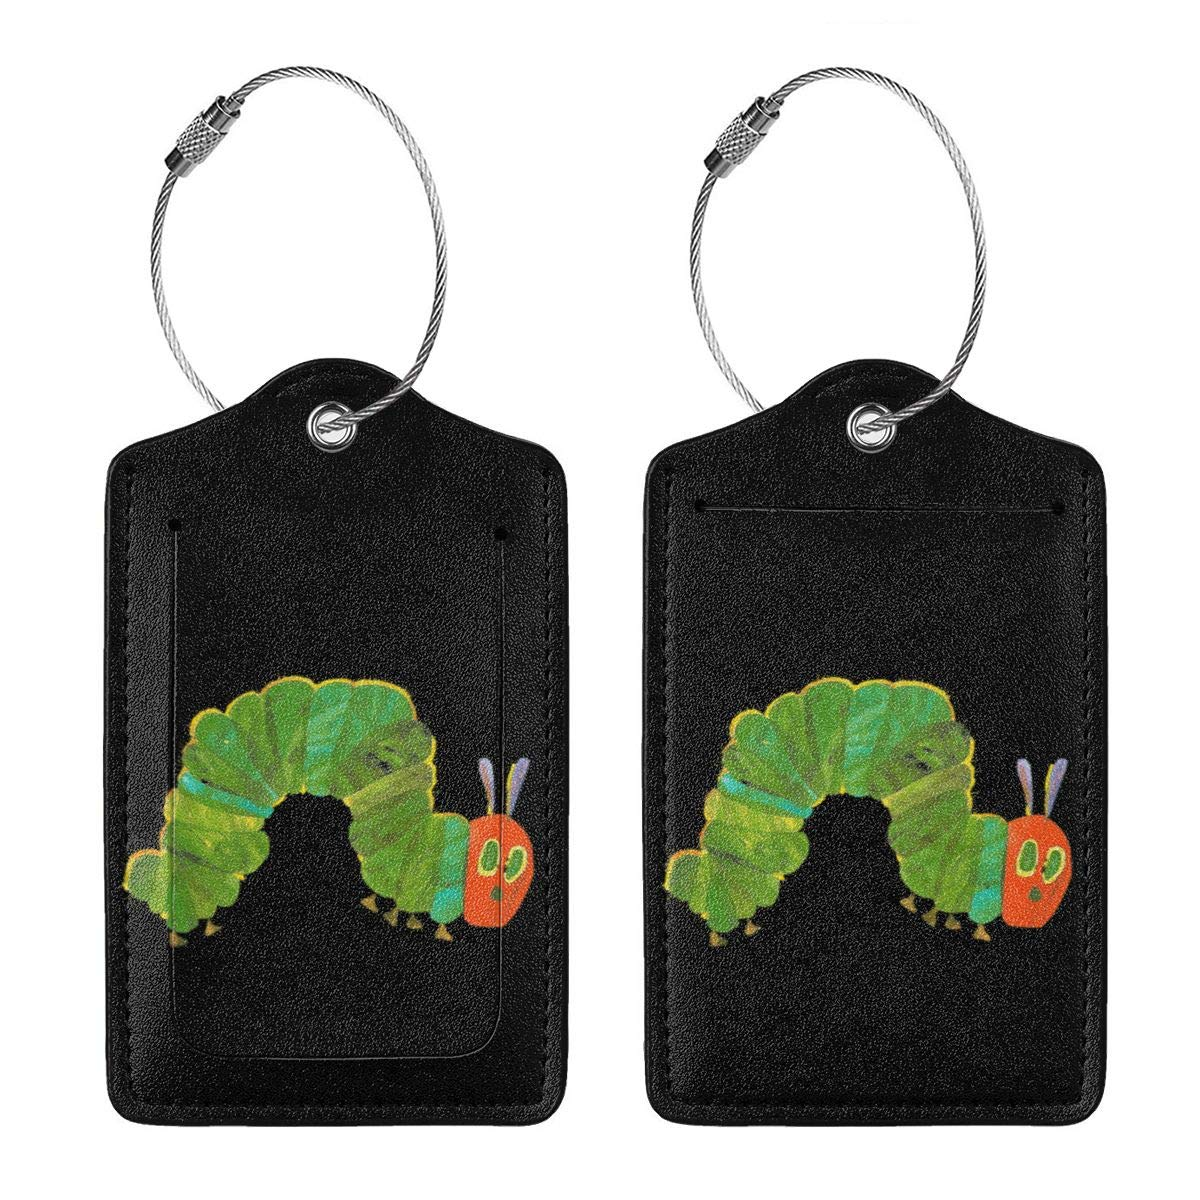 The Very Hungry Caterpillar Leather Luggage Tags Suitcase Tag Travel Bag Labels With Privacy Cover For Men Women 2 Pack 4 Pack